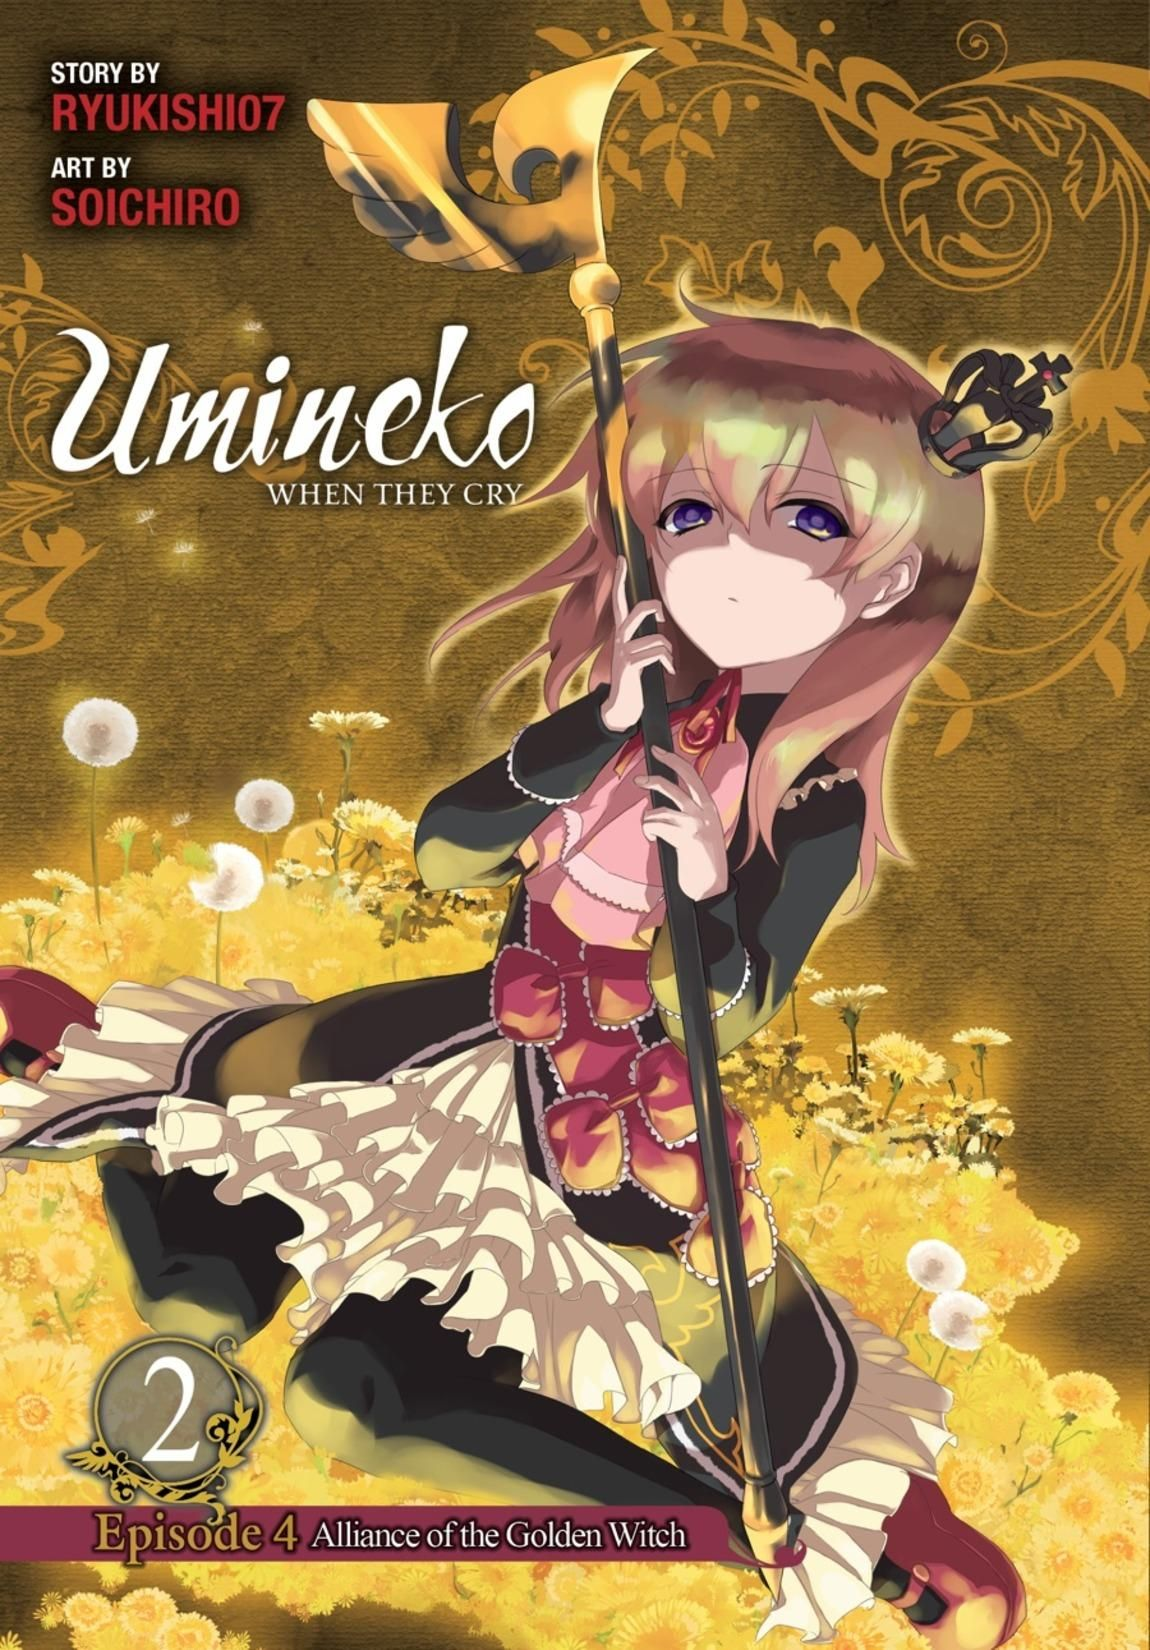 Umineko: When They Cry Episode 4: Alliance of the Golden Witch Review